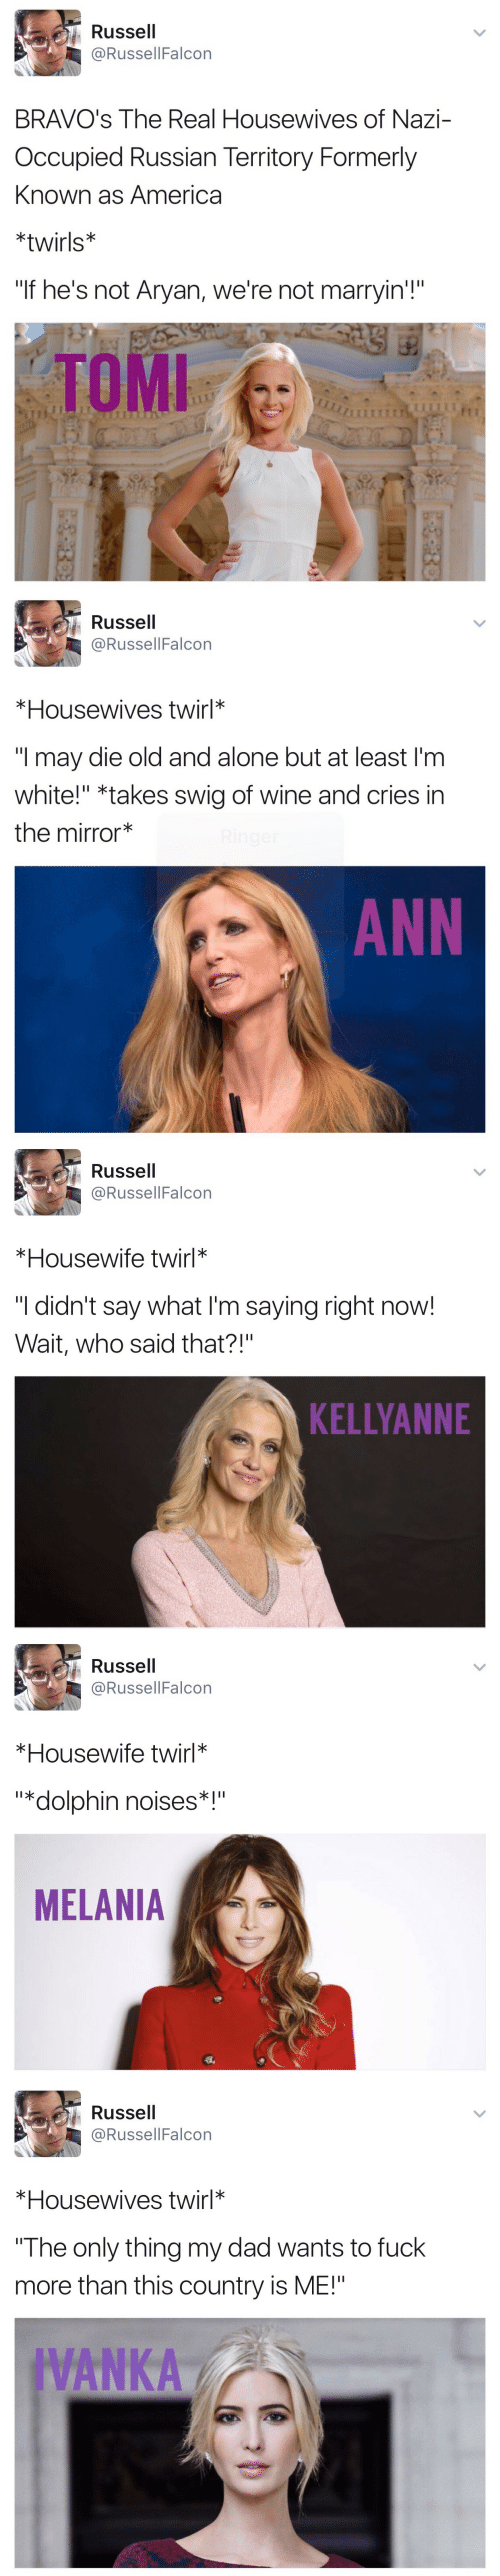 "Kellyanne: Russell  @RussellFalcon  BRAVO's The Real Housewives of Nazi-  Occupied Russian Territory Formerly  Known as America  *twirls*  ""If he's not Aryan, we're not marryin'!""  TOMI   Russell  @RussellFalcon  *Housewives twirl*  ""I may die old and alone but at least I'm  white!"" *takes swig of wine and cries in  the mirror  ANN   Russell  @RussellFalcon  *Housewife twirl*  ""I didn't say what I'm saying right now!  Wait, who said that?!""  KELLYANNE   Russell  @RussellFalcon  *Housewife twirl*  ""*dolphin noises*  MELANIA   Russell  @RussellFalcon  *Housewives twirl*  The only thing my dad wants to fuck  more than this country is ME!""  IVANKA"